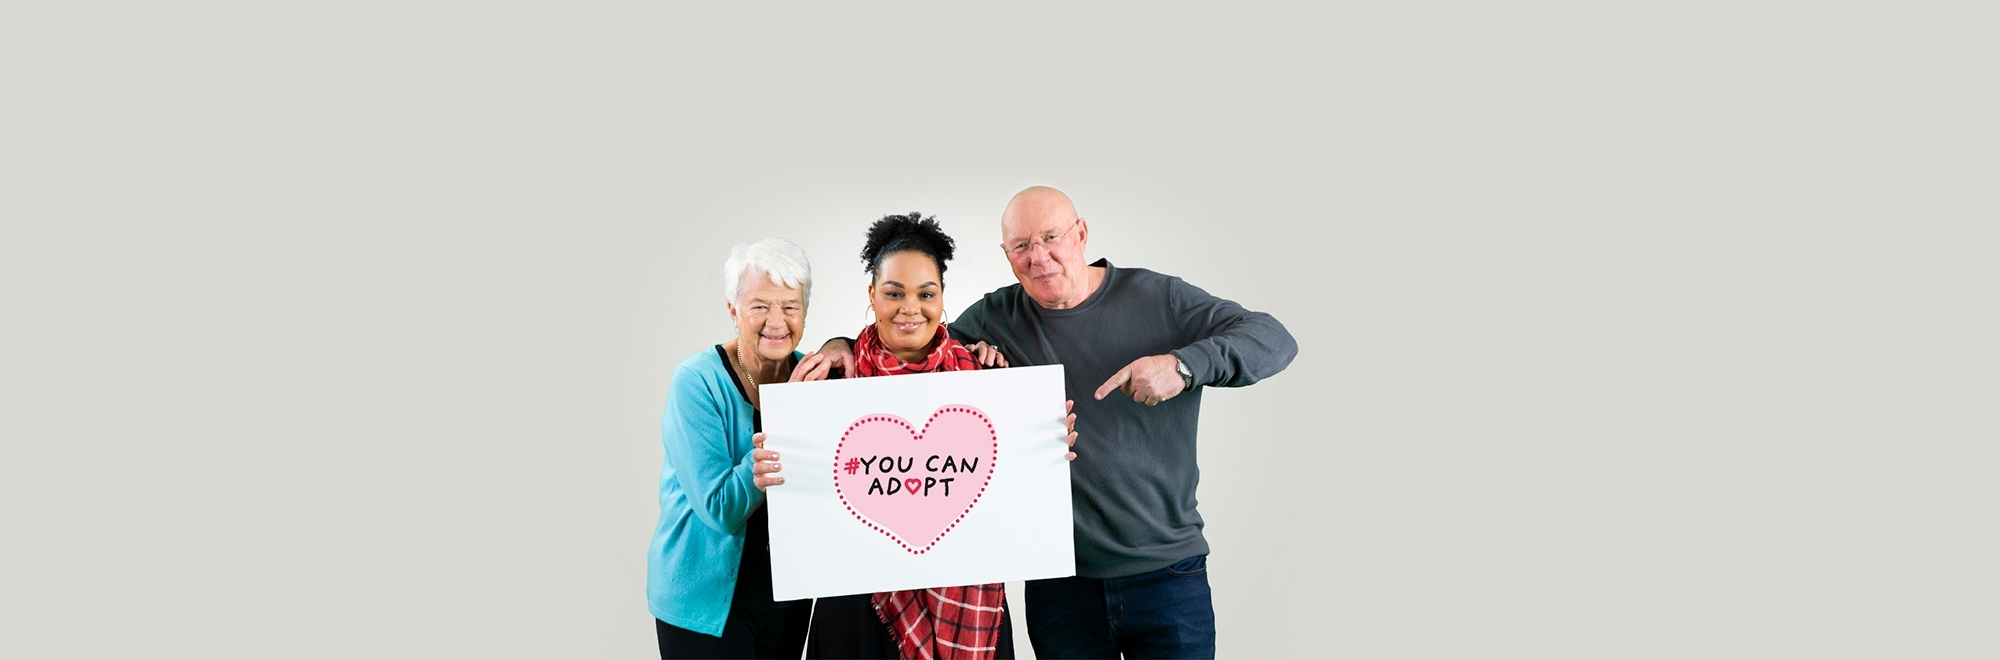 #YouCanAdopt tells the truth about adoption from the experiences of real families